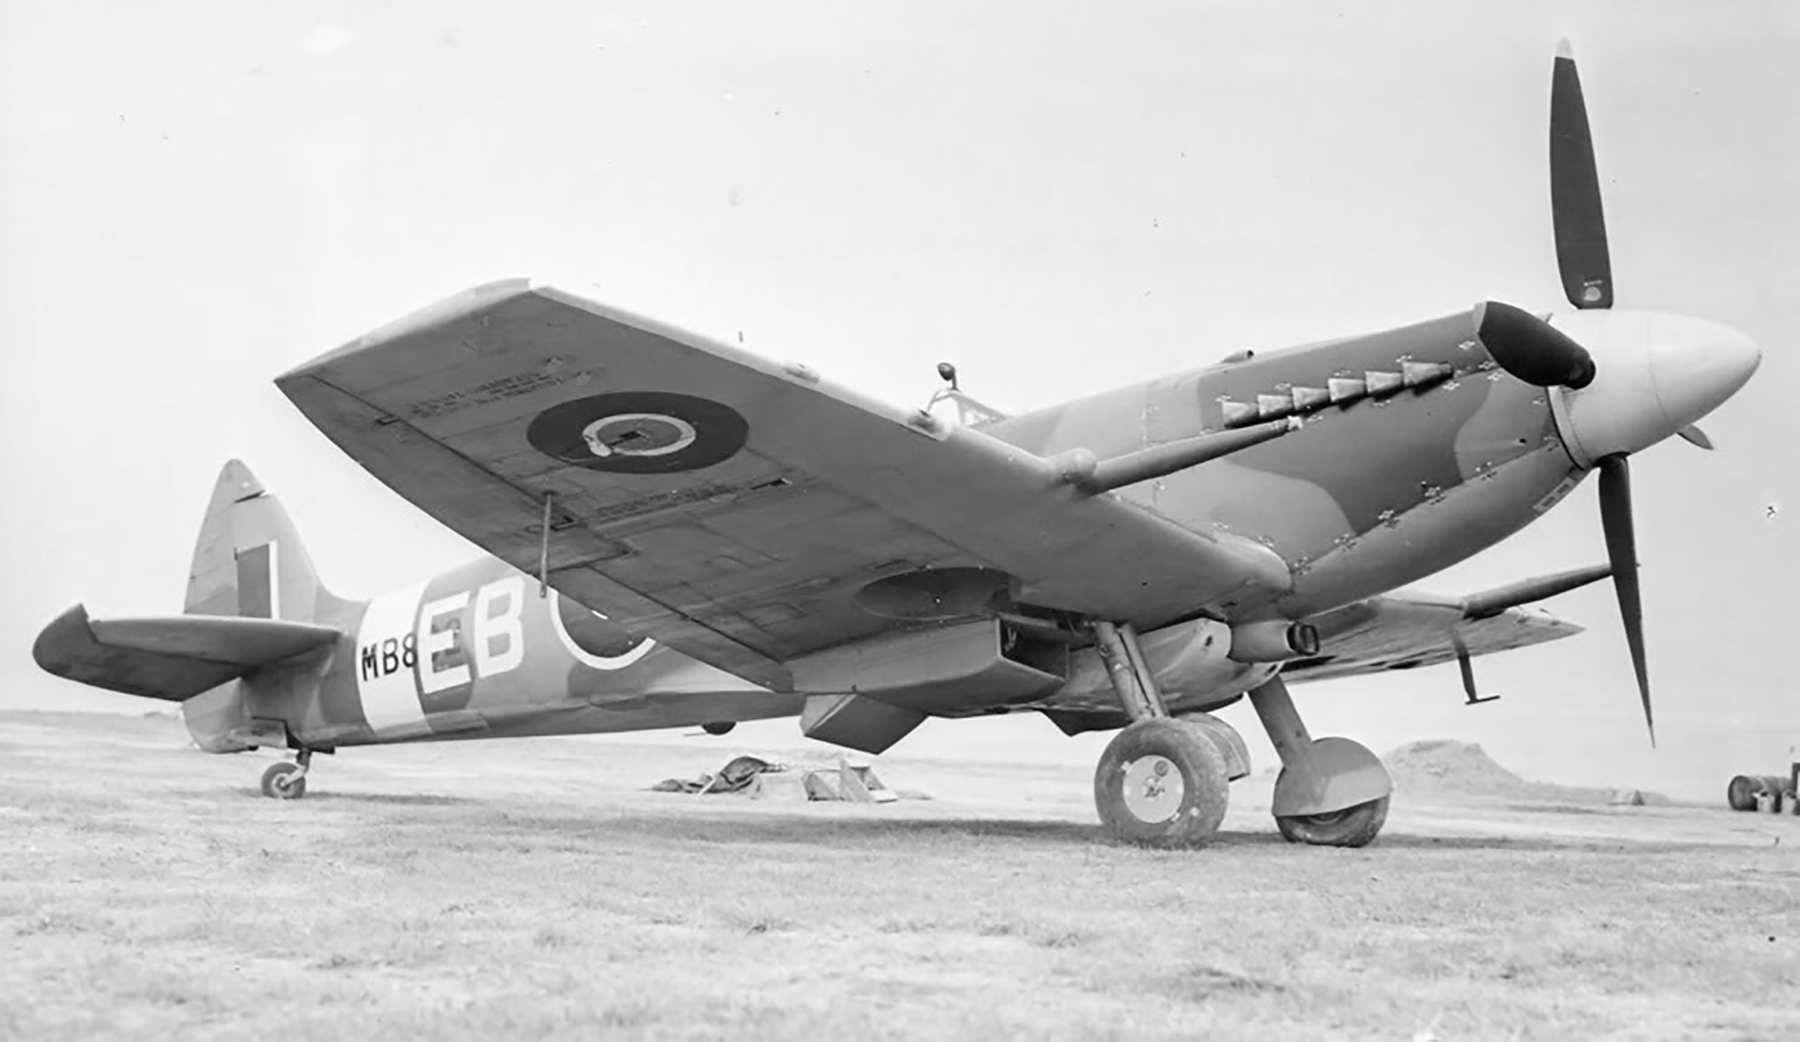 Spitfire XII RAF 41Sqn EBB Don Smith MB882 at Friston Sussex 1943 01